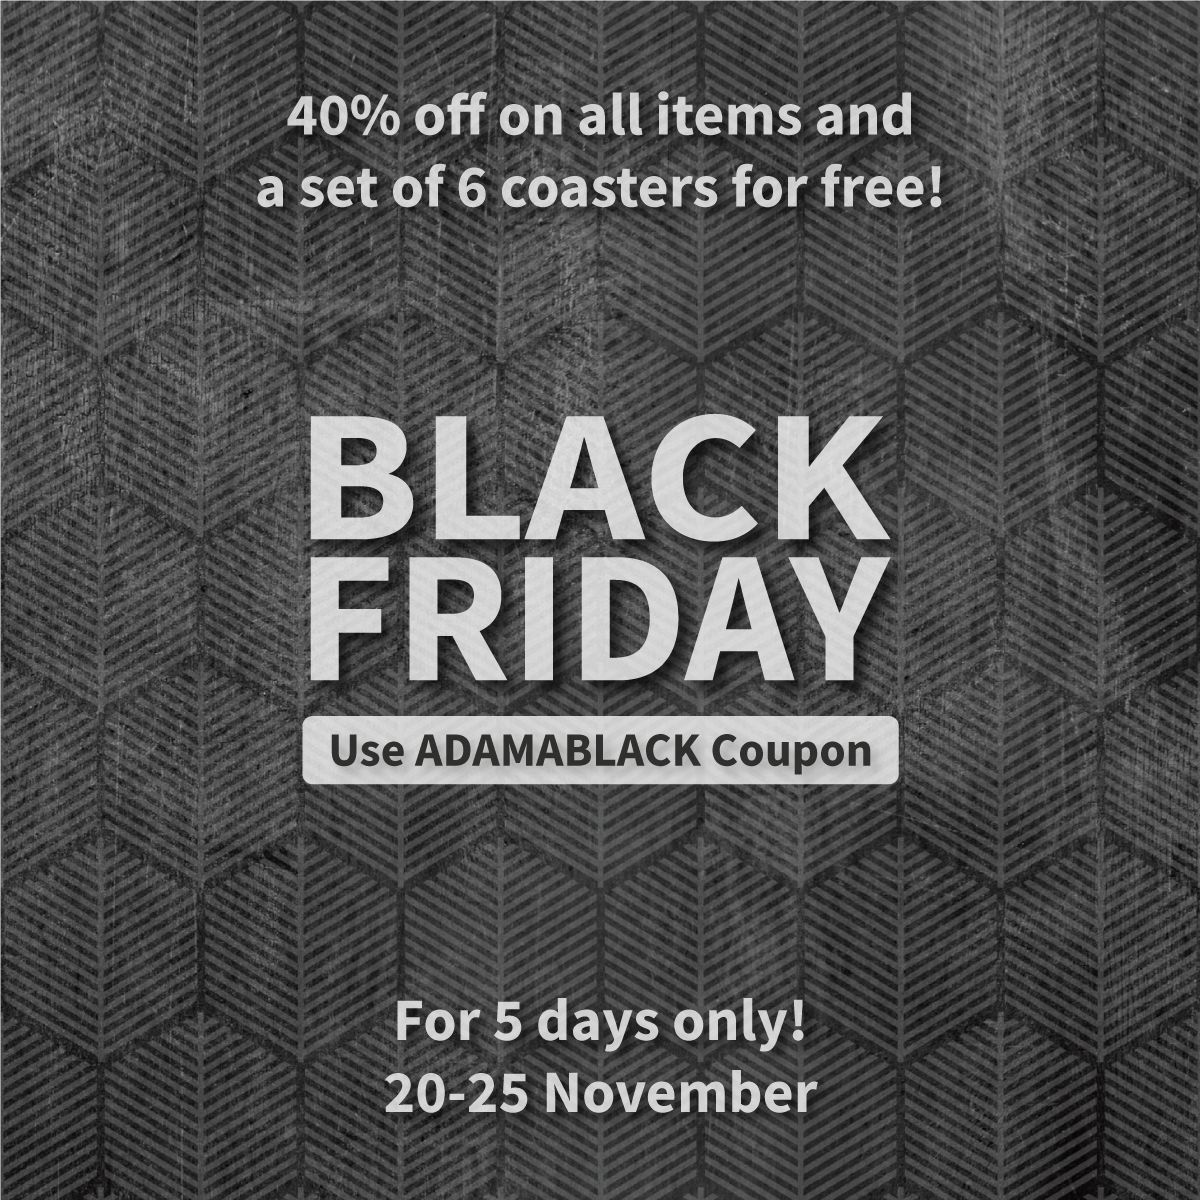 You Can Enjoy Our Black Friday Sales Until This Sunday We Have 40 Off On All Items And A Set Of 6 Coasters For Free Vinyl Rug Retail Logos Wall Stickers